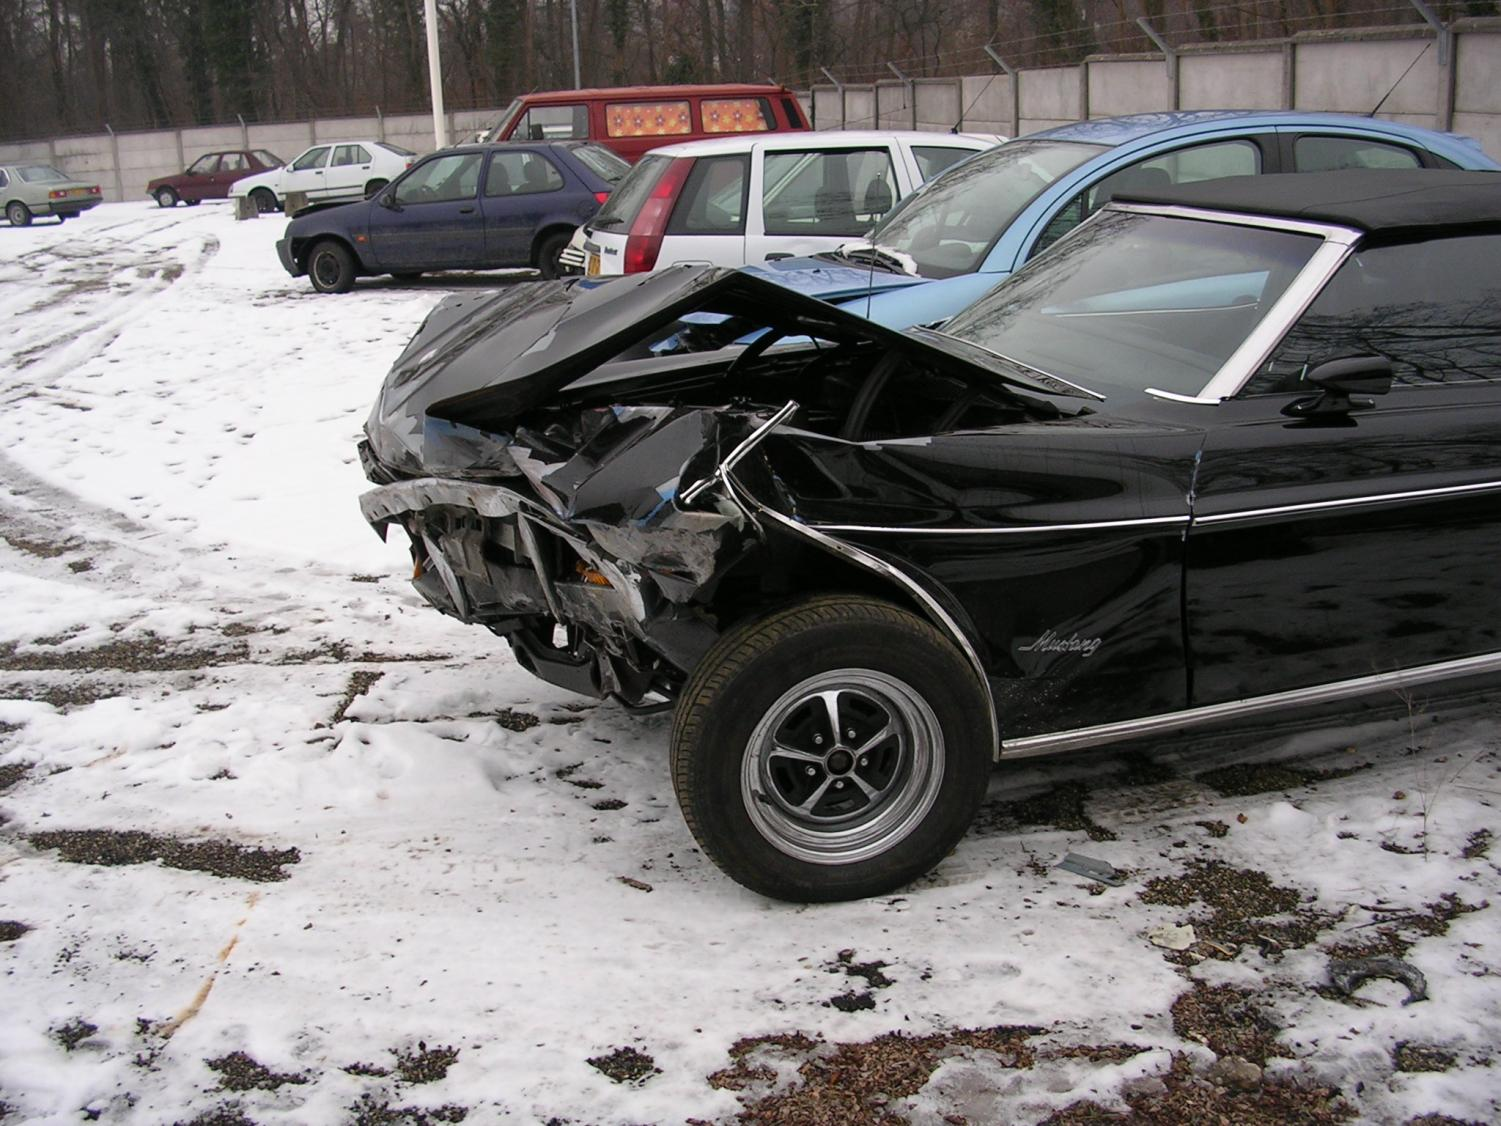 At the end of fifth grade, my family's car was hit by another on the freeway. No injuries were apparent at the time.